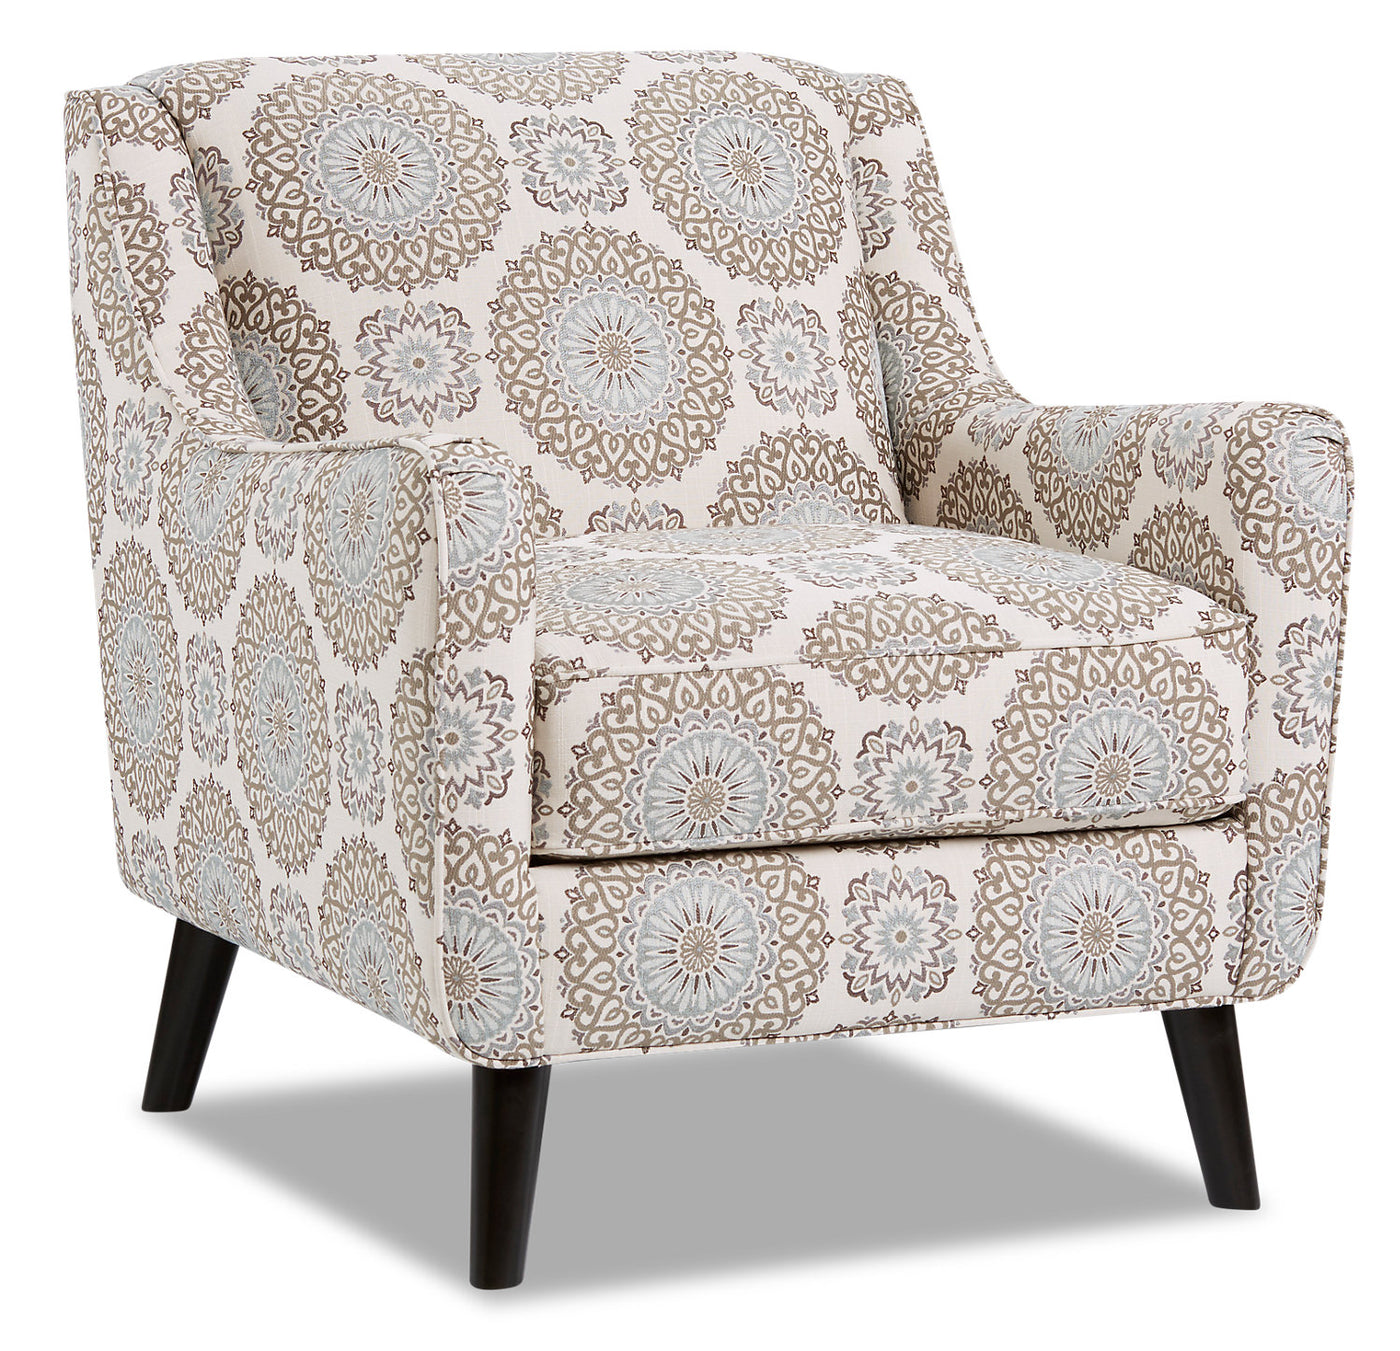 Dina Fabric Accent Chair Brianne Twilight The Brick